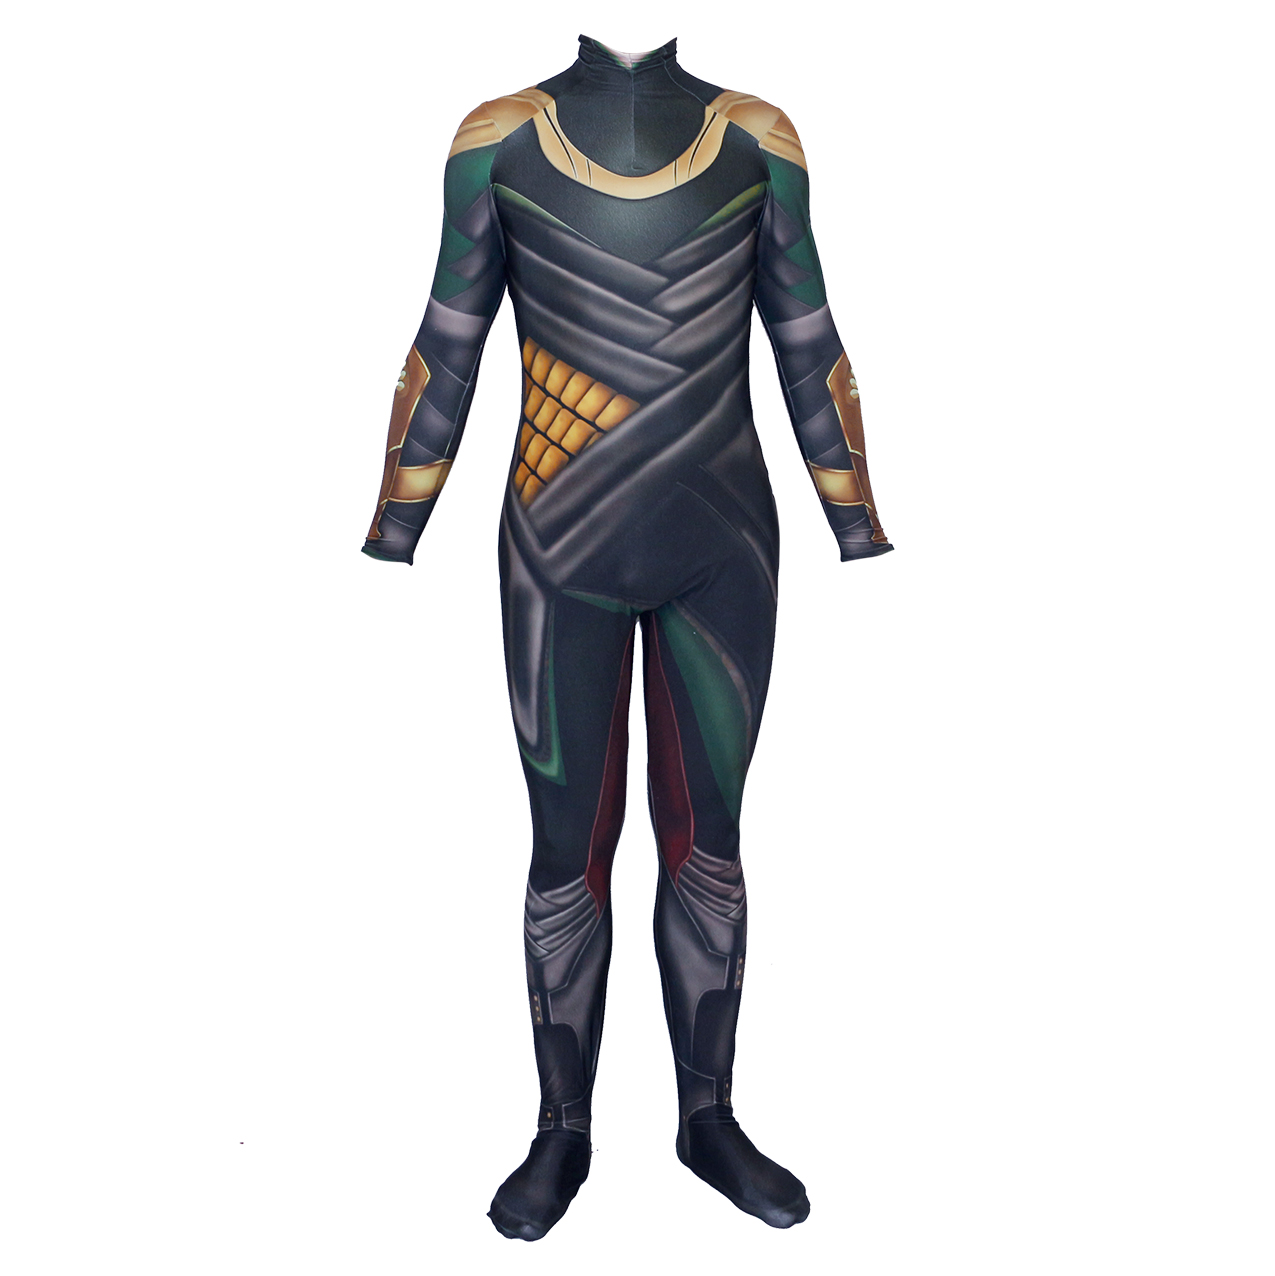 Thor The Dark World Loki Costume Whole Sets Cosplay Costume Halloween Party